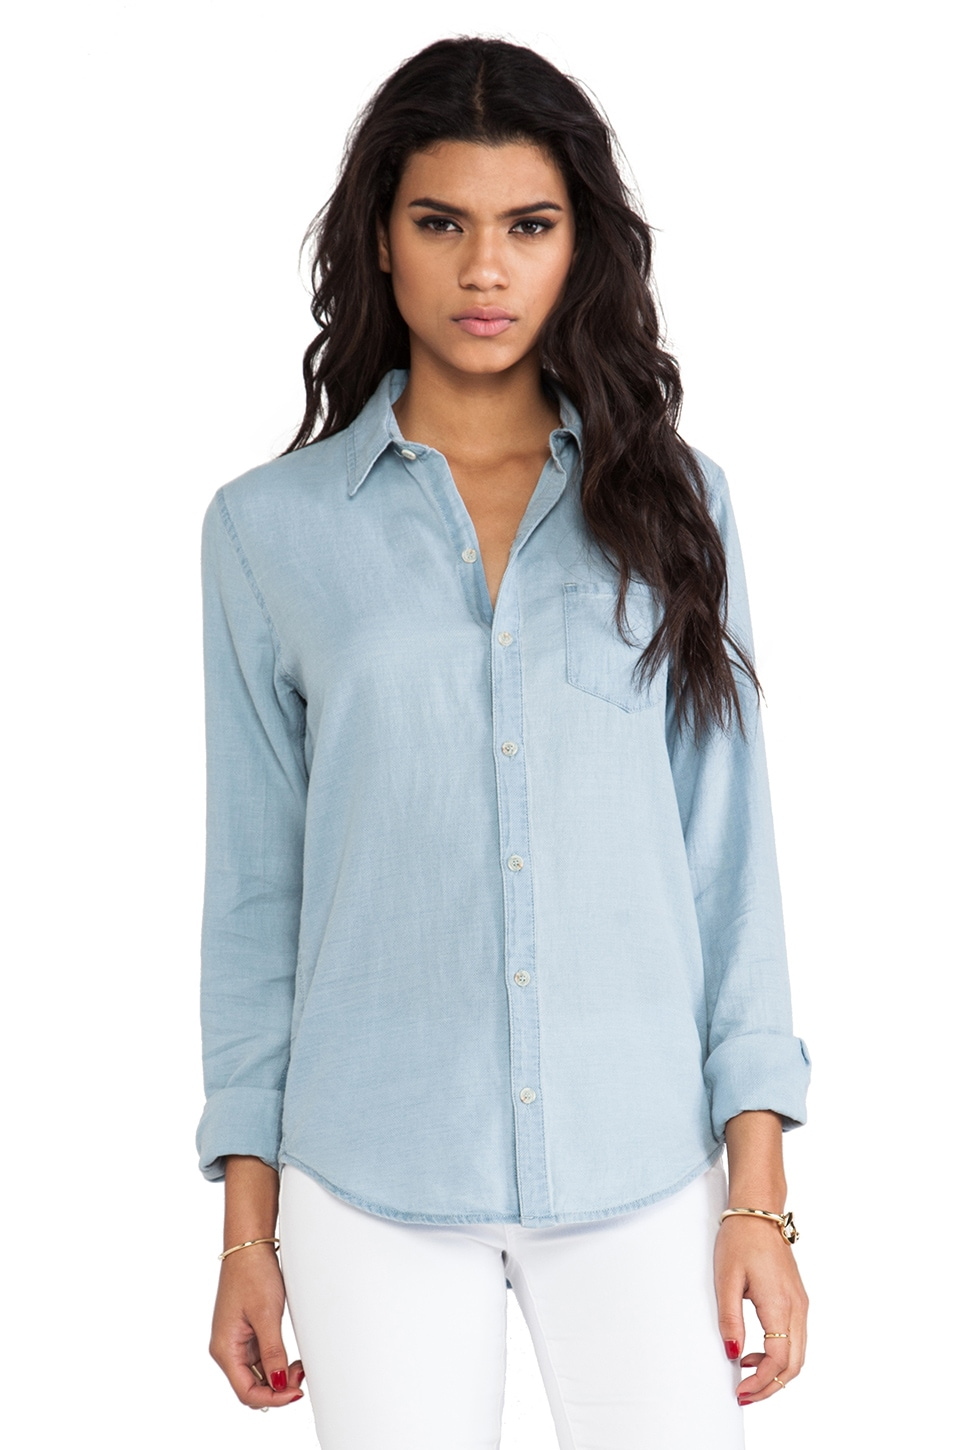 Joe's Jeans Relax Shirt in Kate